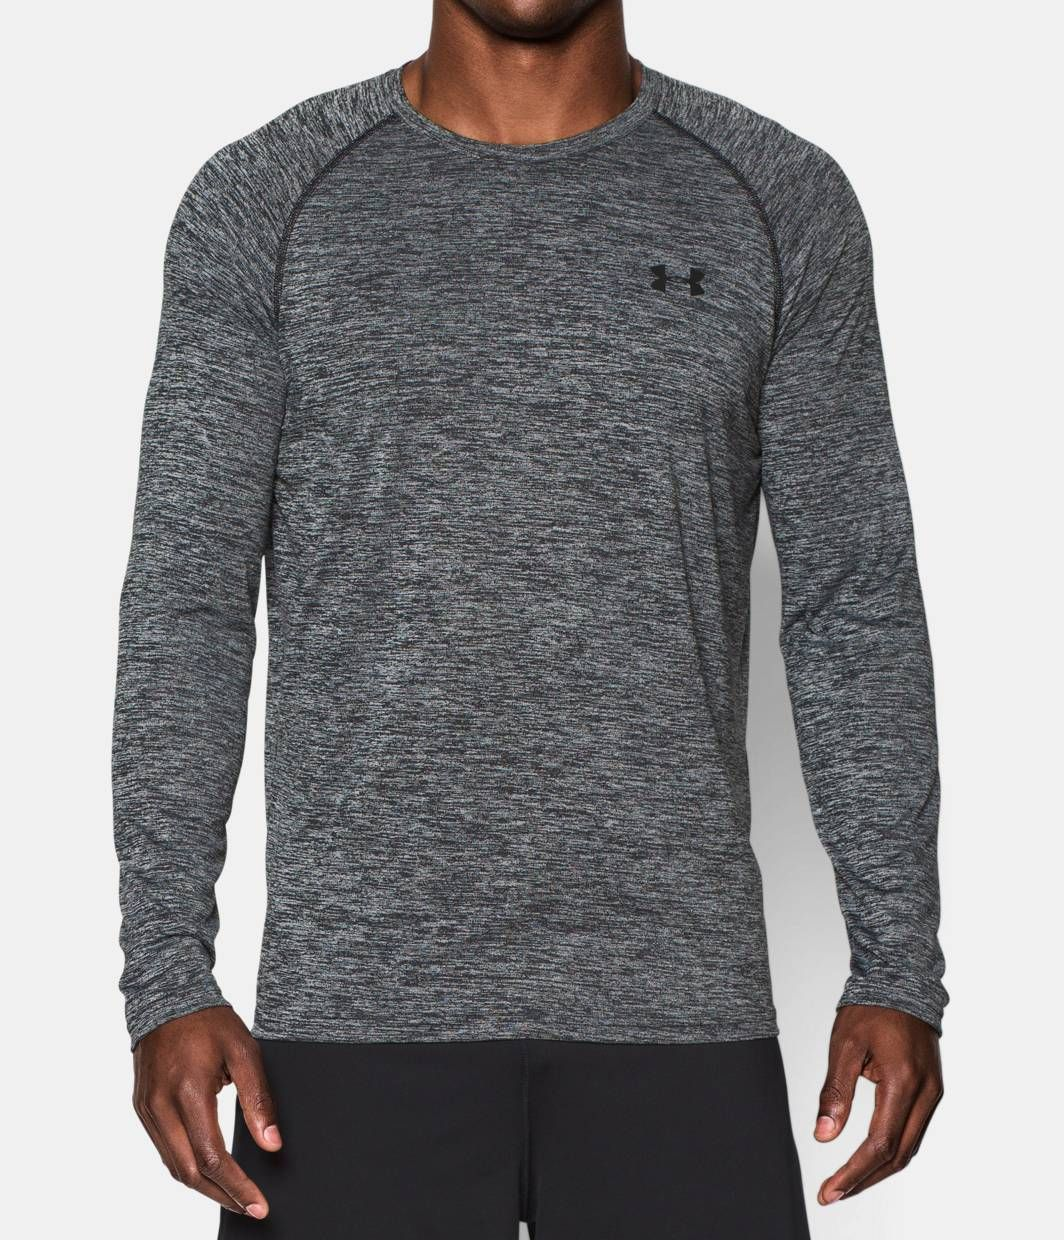 UA Tech™ Patterned Men's Long Sleeve Shirt | Shops, Mens tops and ...